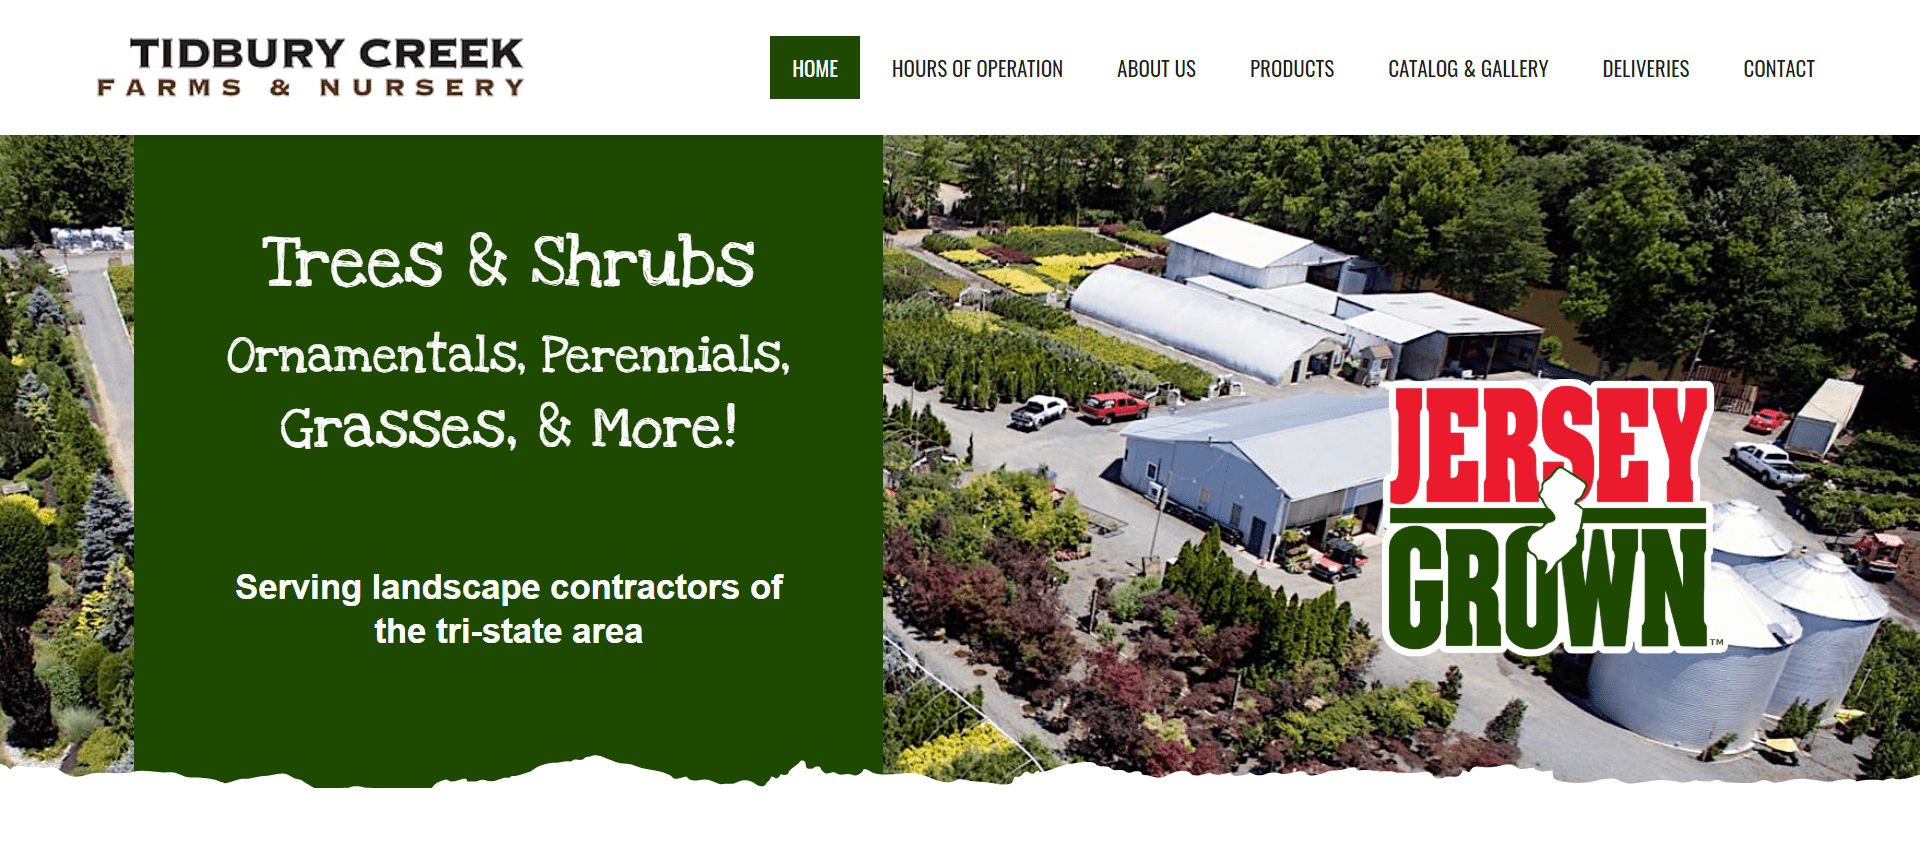 Tidbury Creek Farms website by Jesse The Web Guy